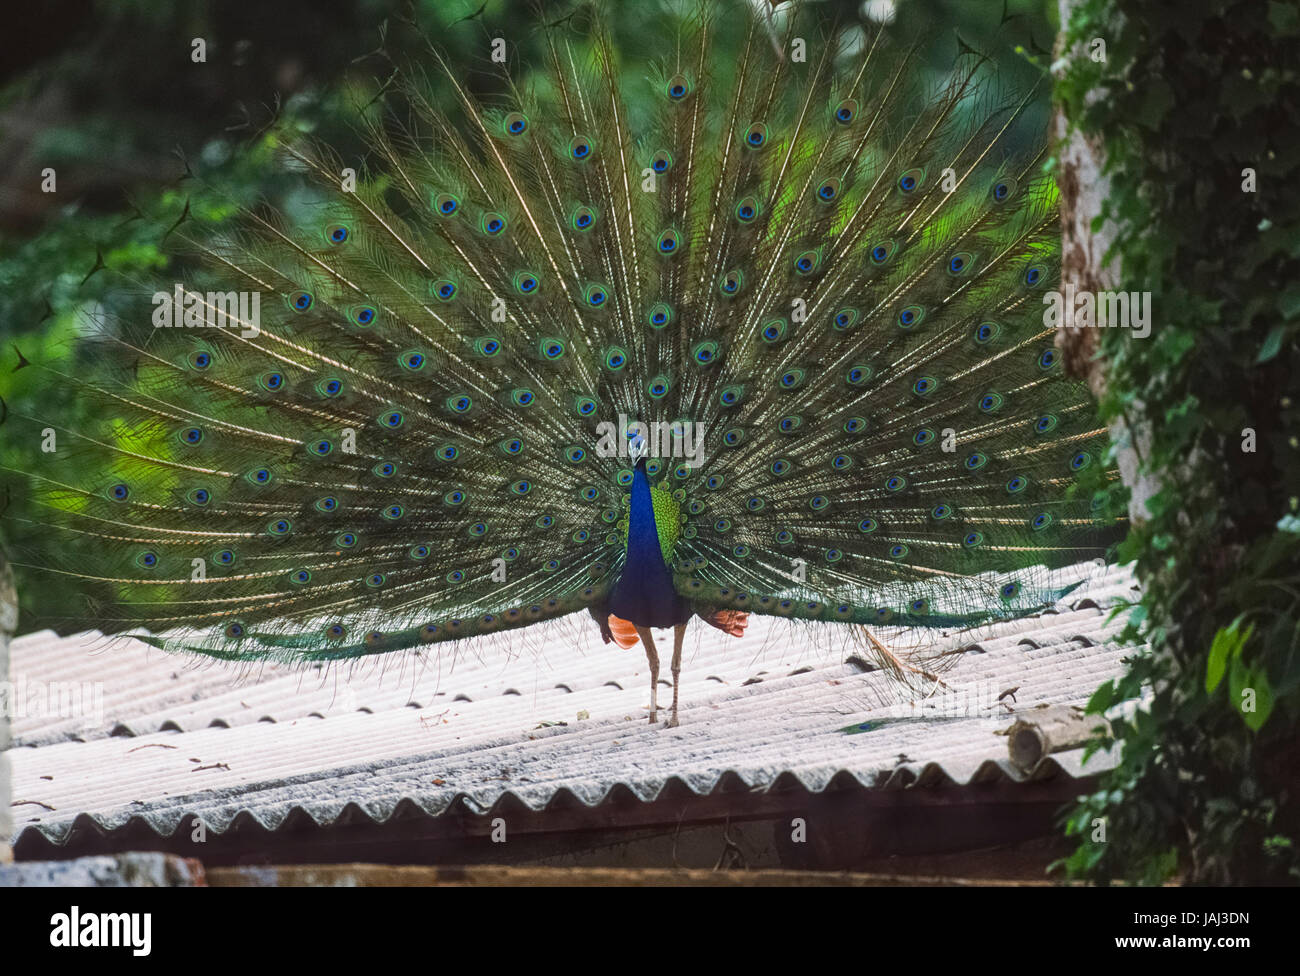 male Peafowl or Peacock, Pavo cristatus, fanning tail feathers,Keoladeo Ghana National Park, Bharatpur, Rajasthan, - Stock Image